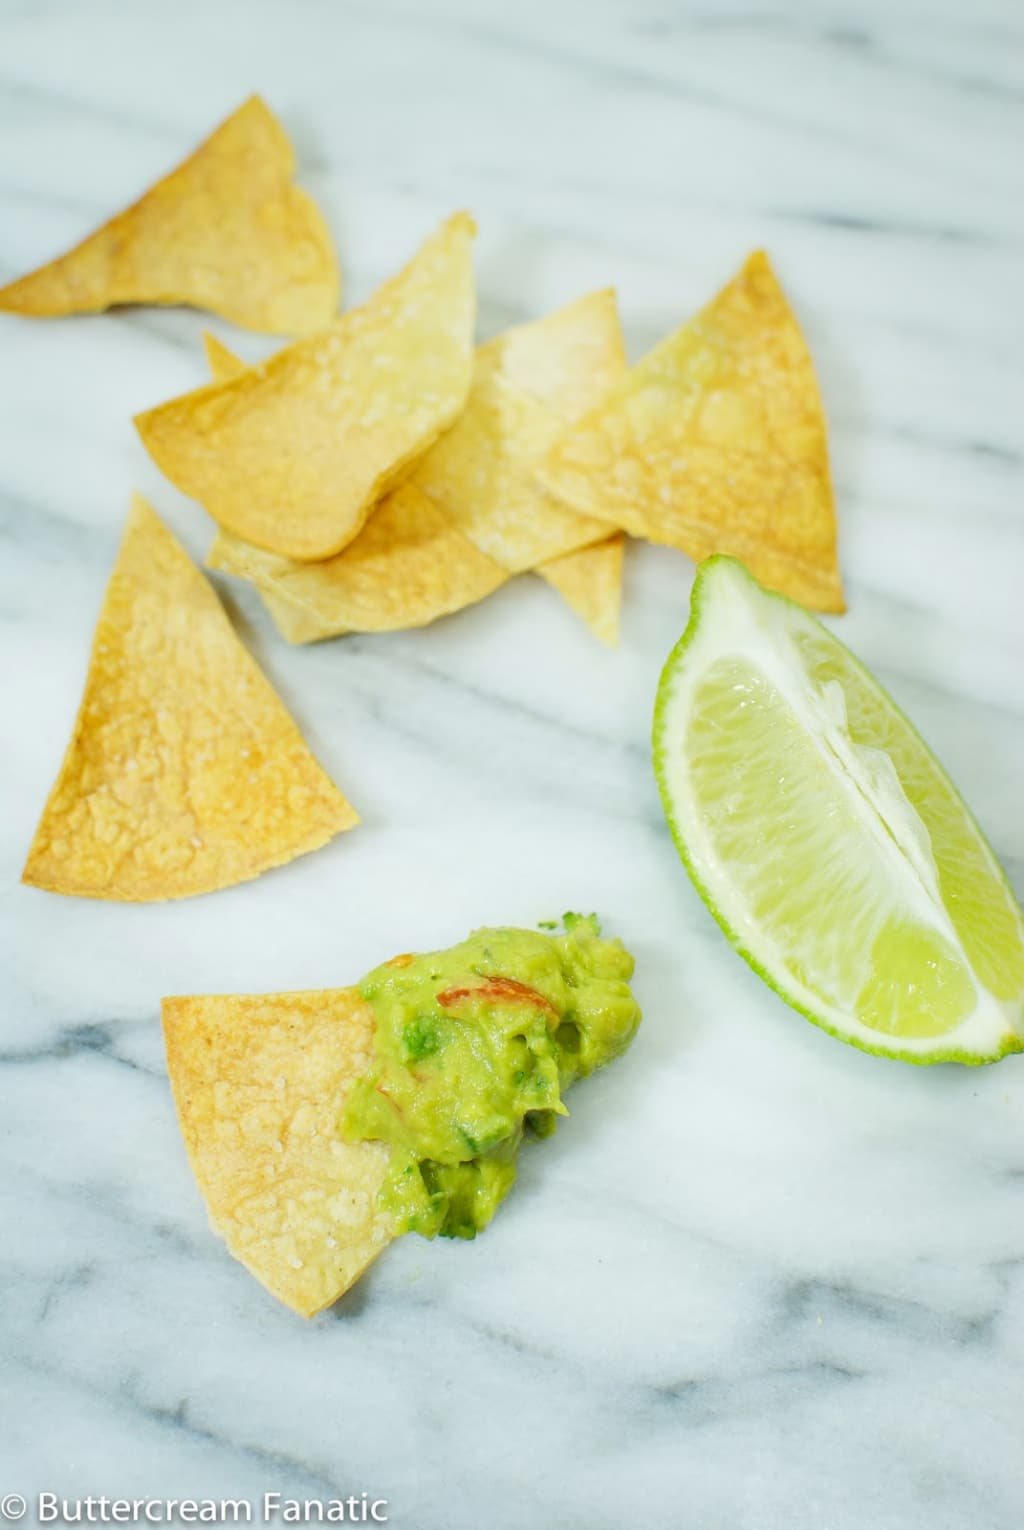 Healthy Homemade Baked Tortilla Chips from www.buttercreamfanatic.com